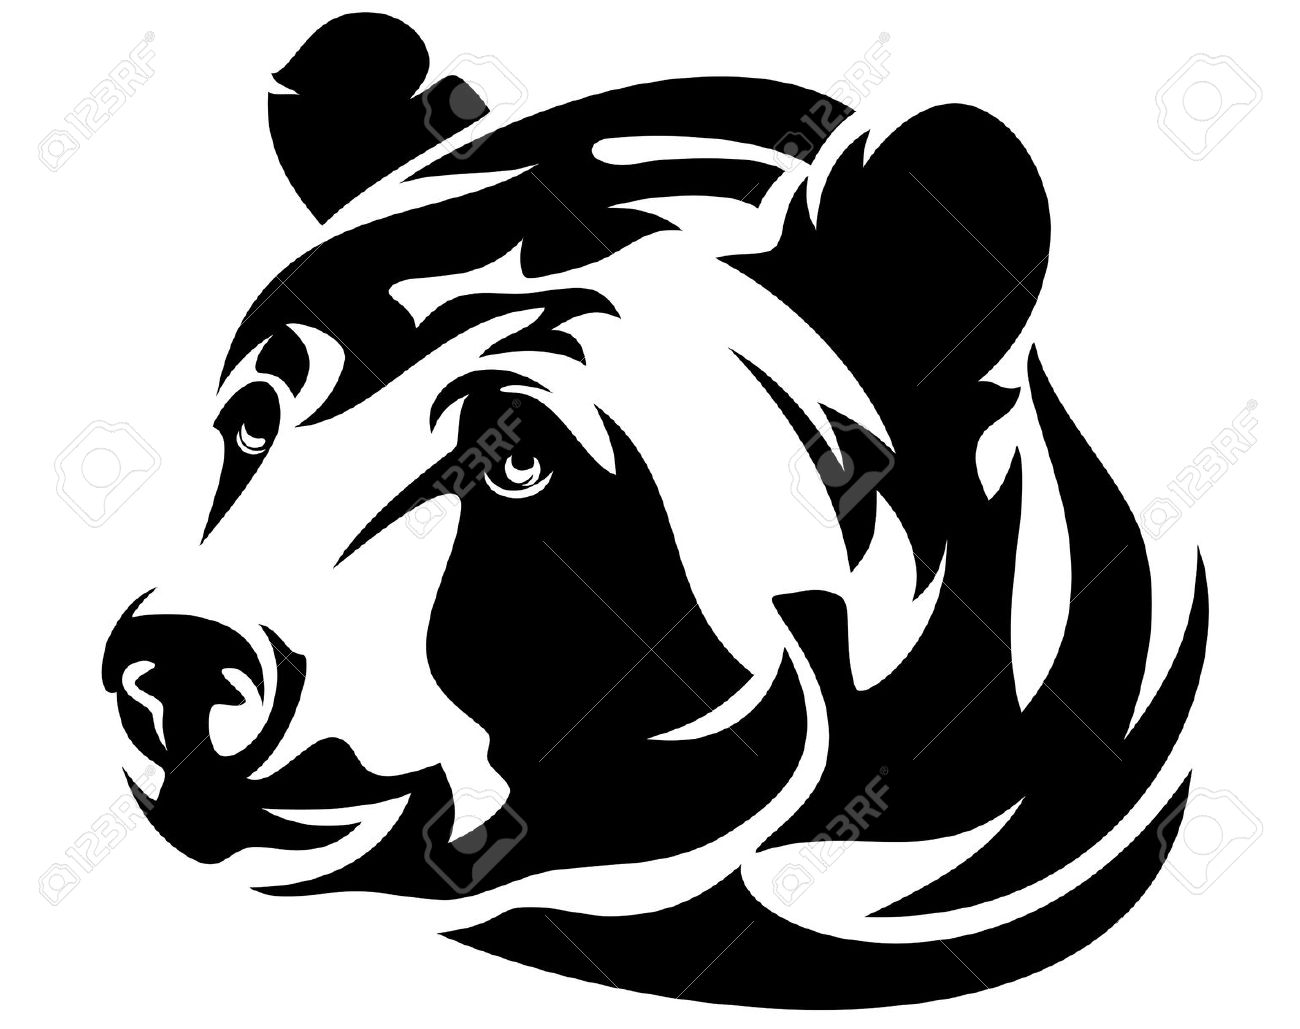 Drawn grizzly bear vector Tattoo tattoos me Bear